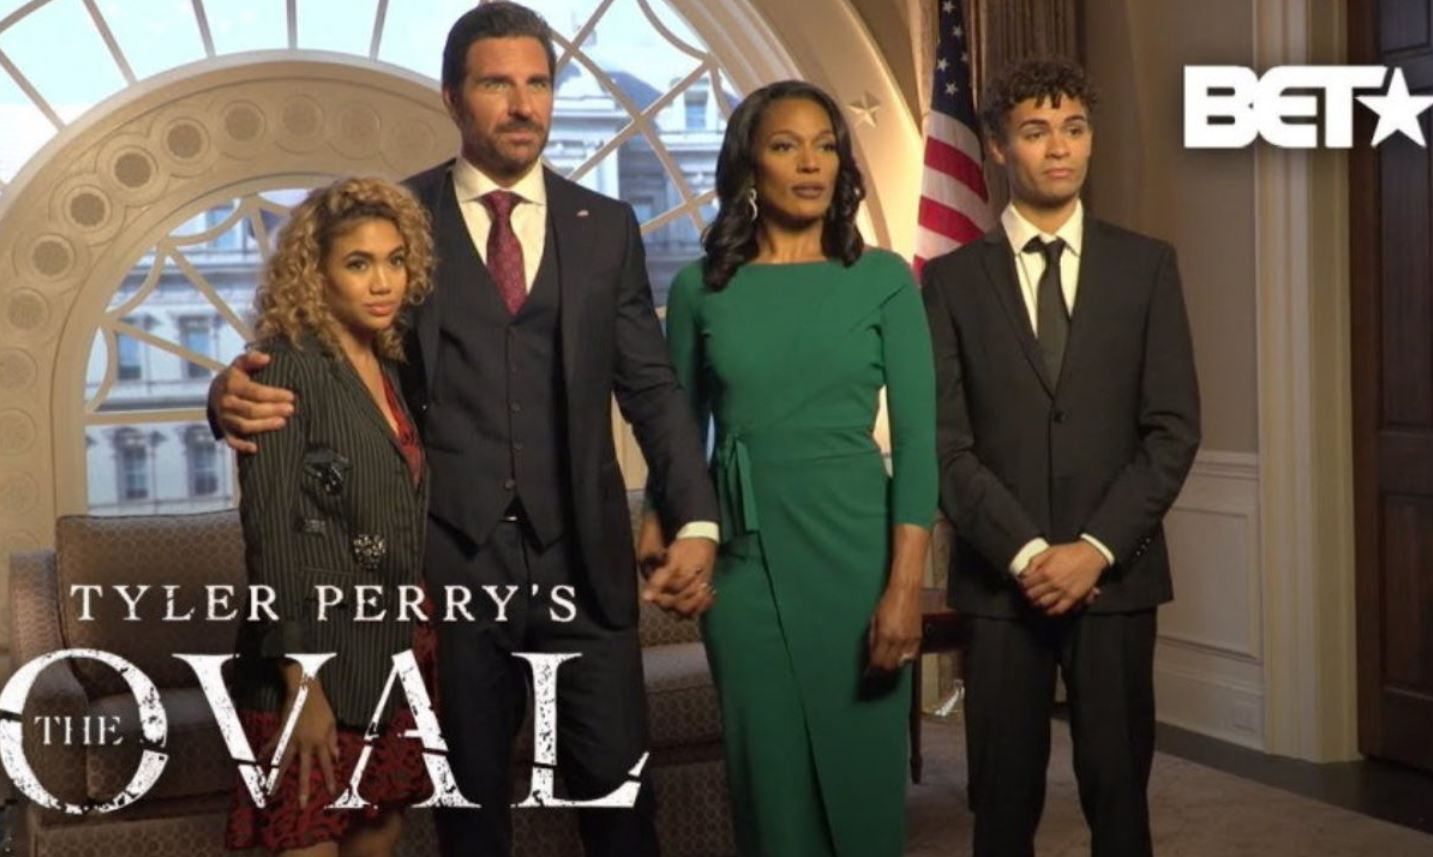 Spoilers and Preview: The Oval Season 2 Episode 15